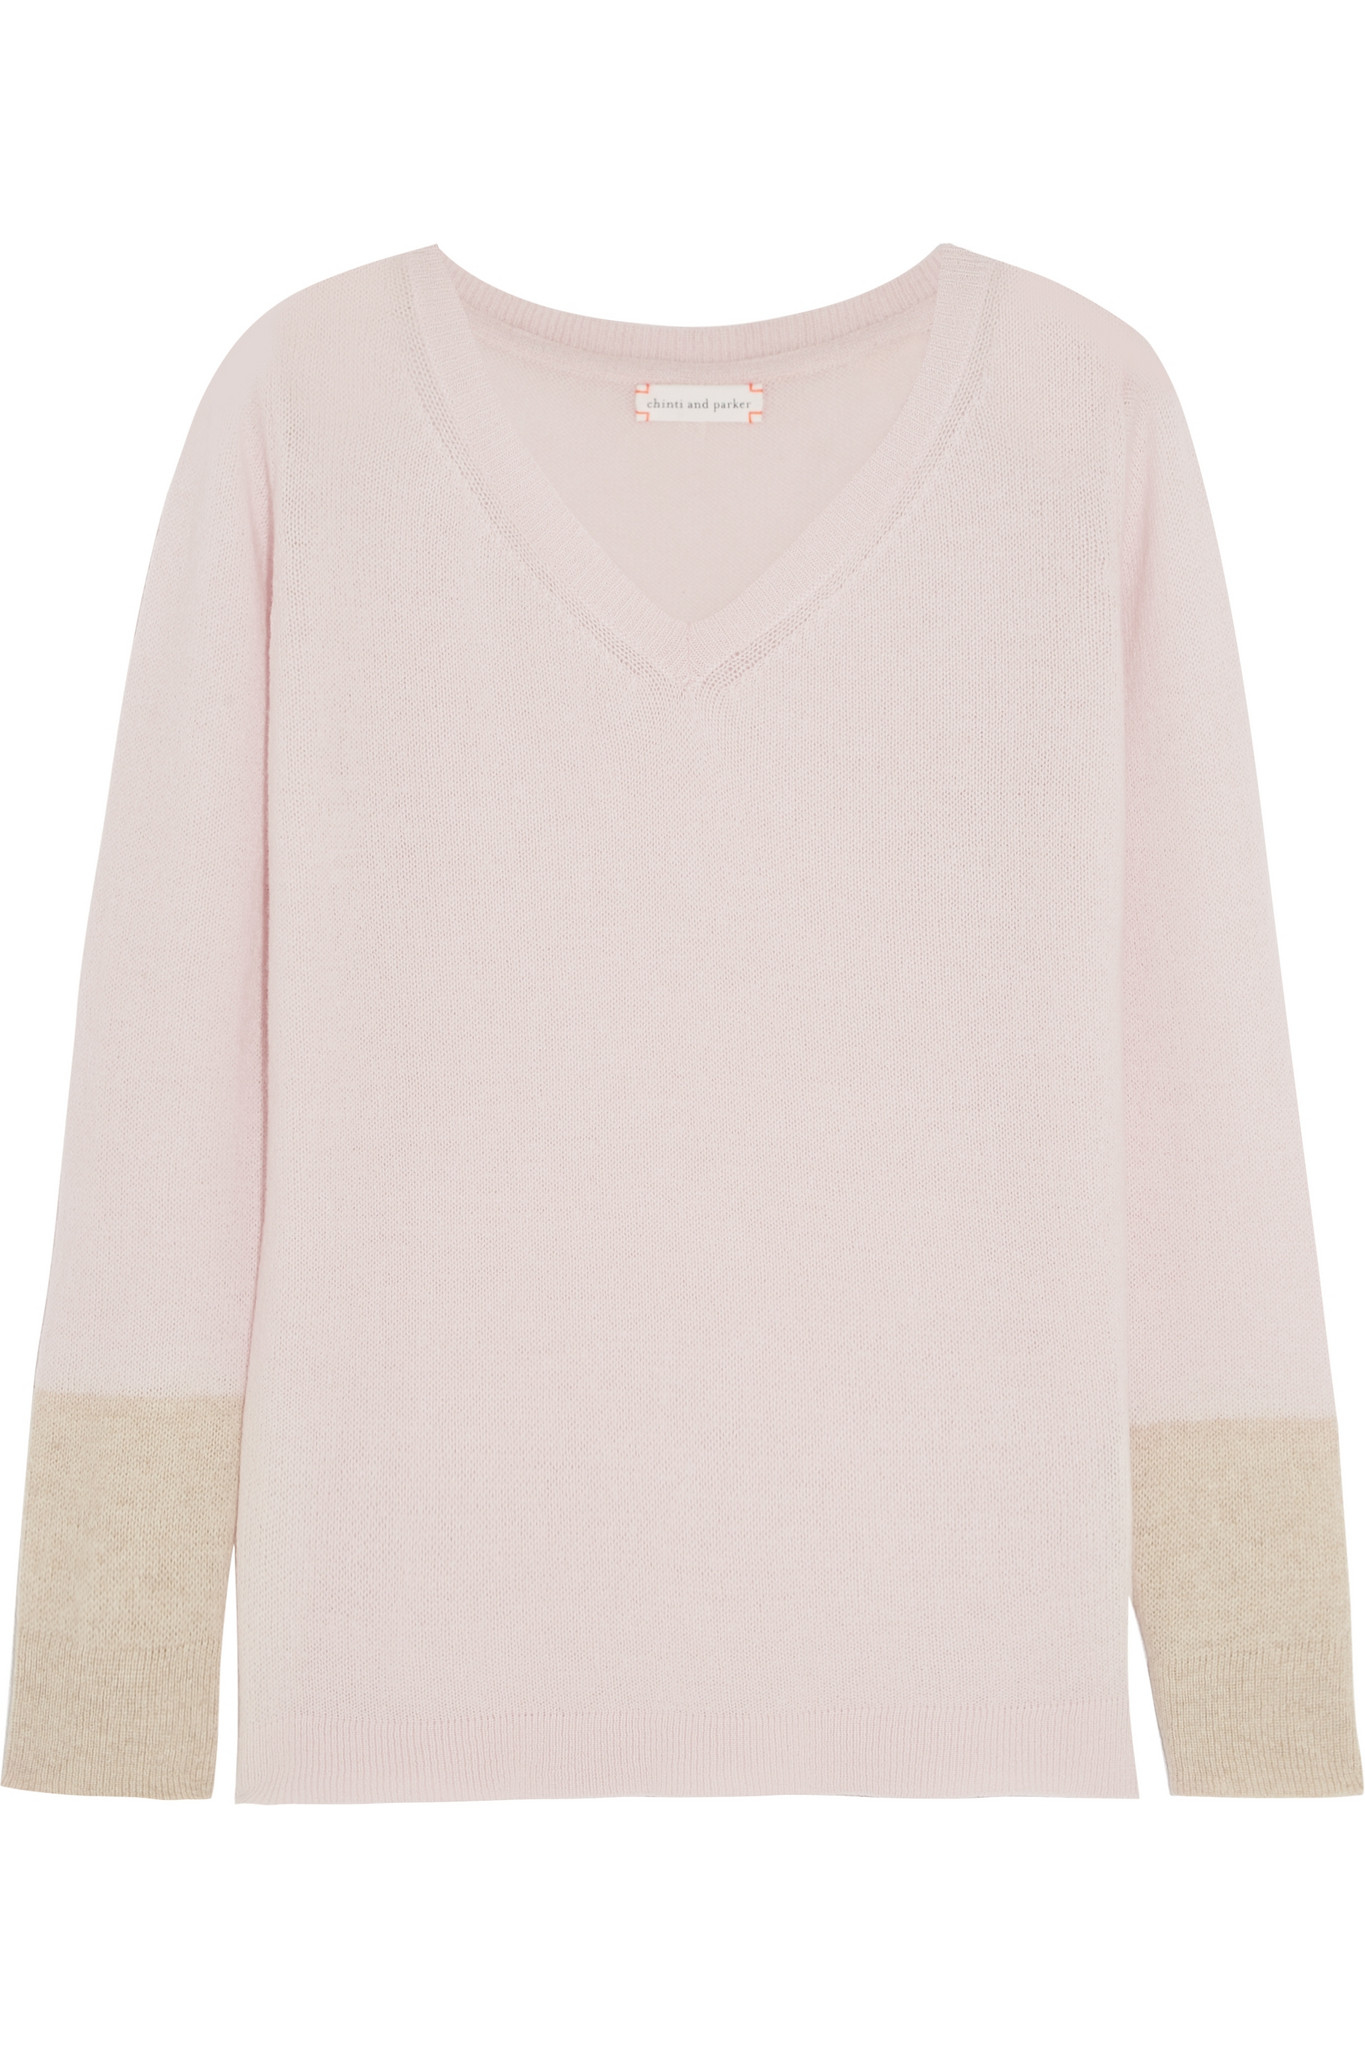 Lyst Chinti Parker Contrast Cuff Cashmere Sweater In Pink